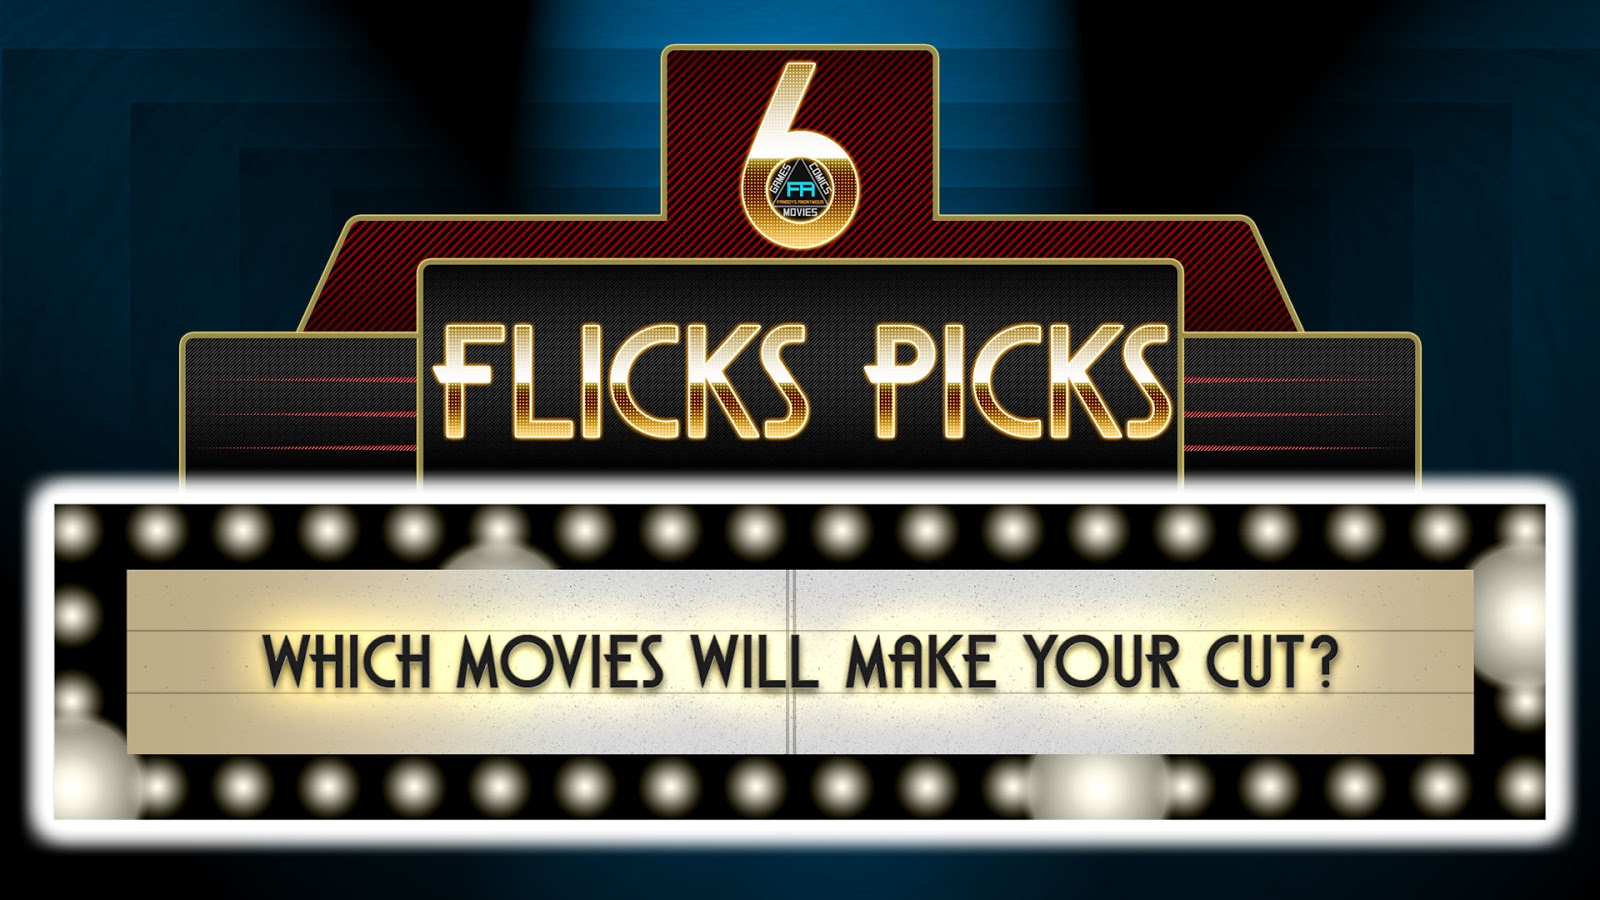 What movies are coming out January 2016 6 Flicks Picks